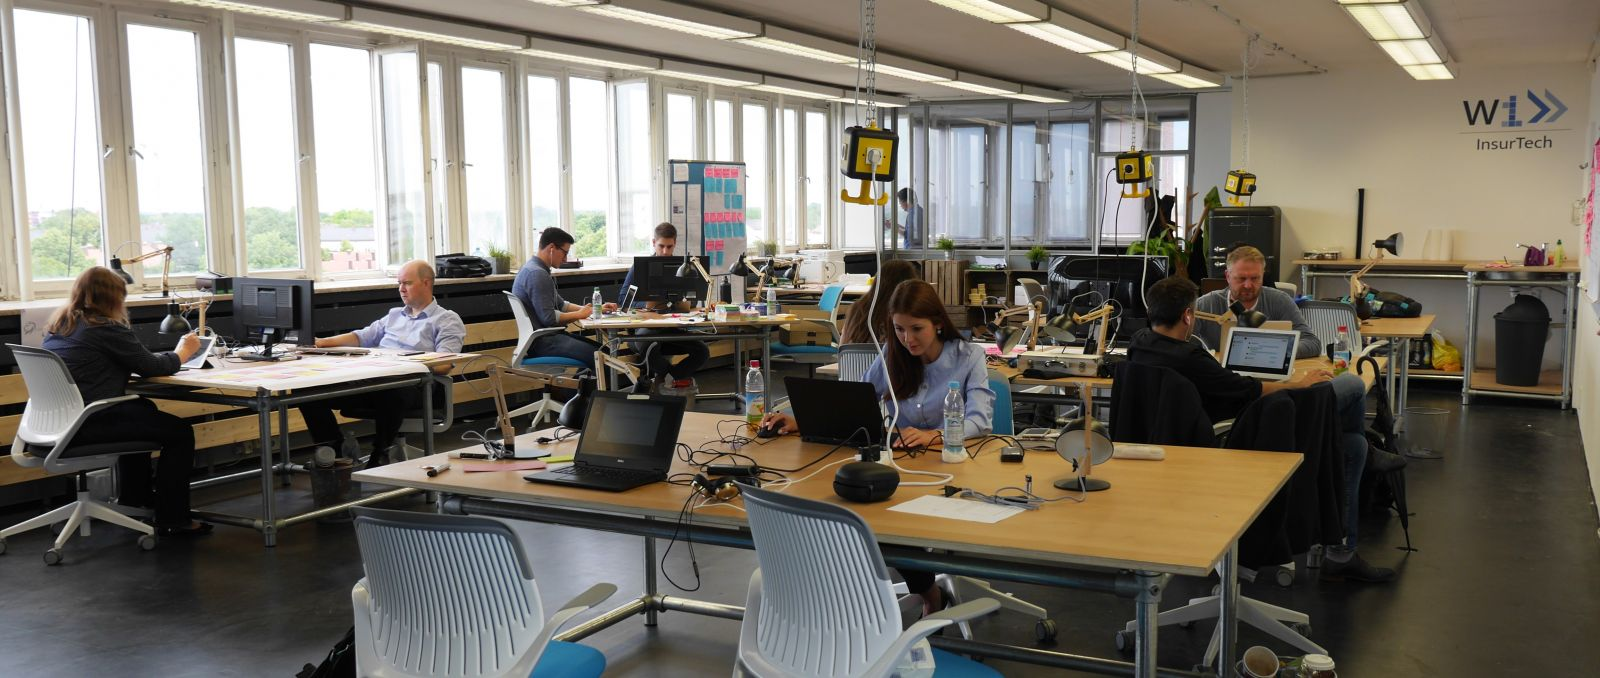 8 BEST COWORKING SPACES IN MUNICH 6